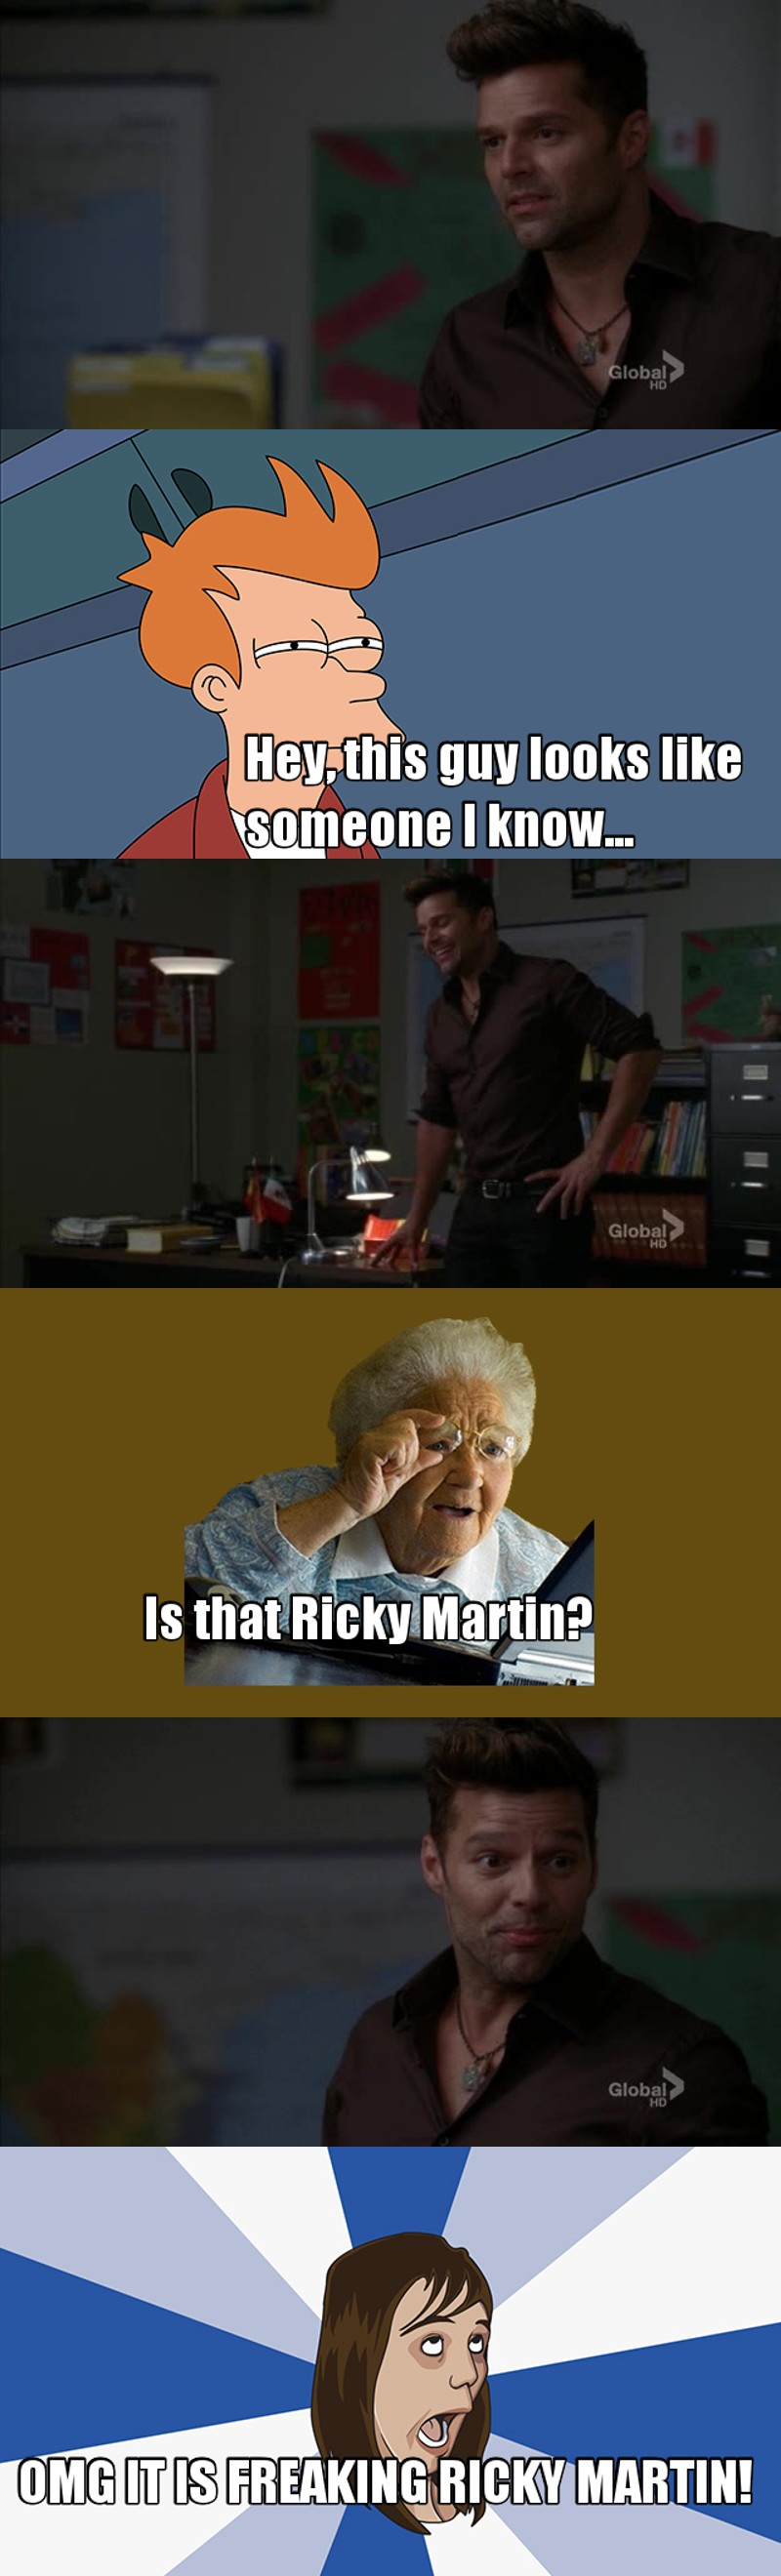 Ricky Martin in glee, I didn't see that coming.